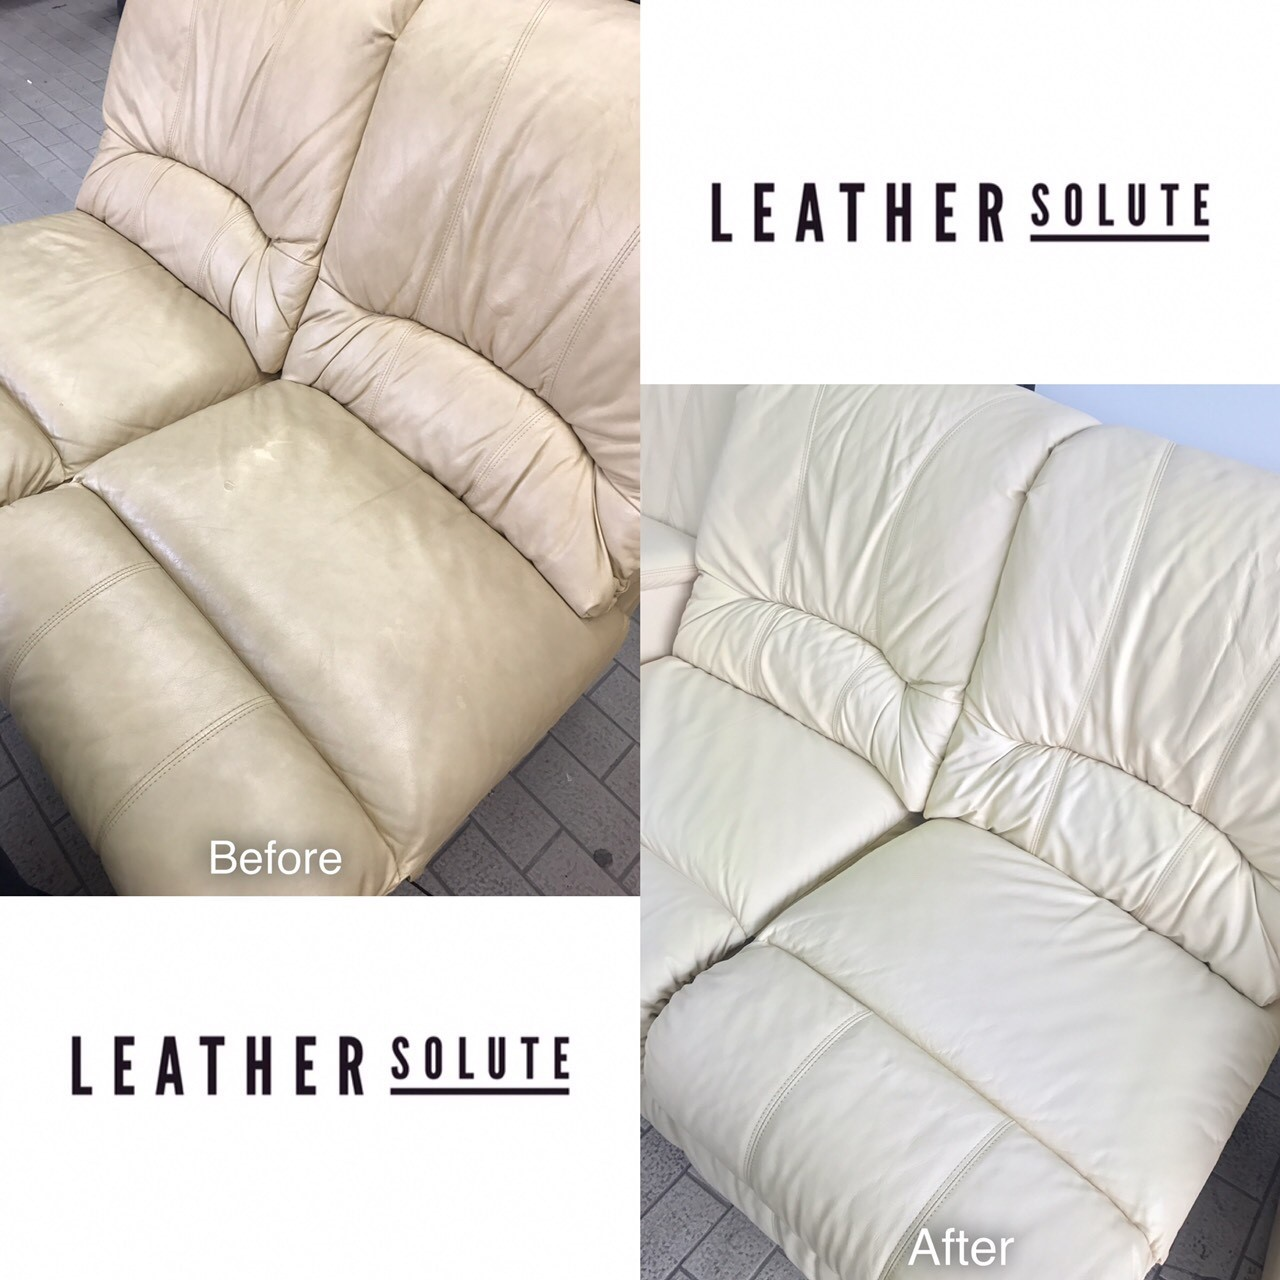 //www.leathersolute.co.th/wp-content/uploads/2018/12/Cleaning-furniture_๑๘๑๒๓๐_0008.jpg